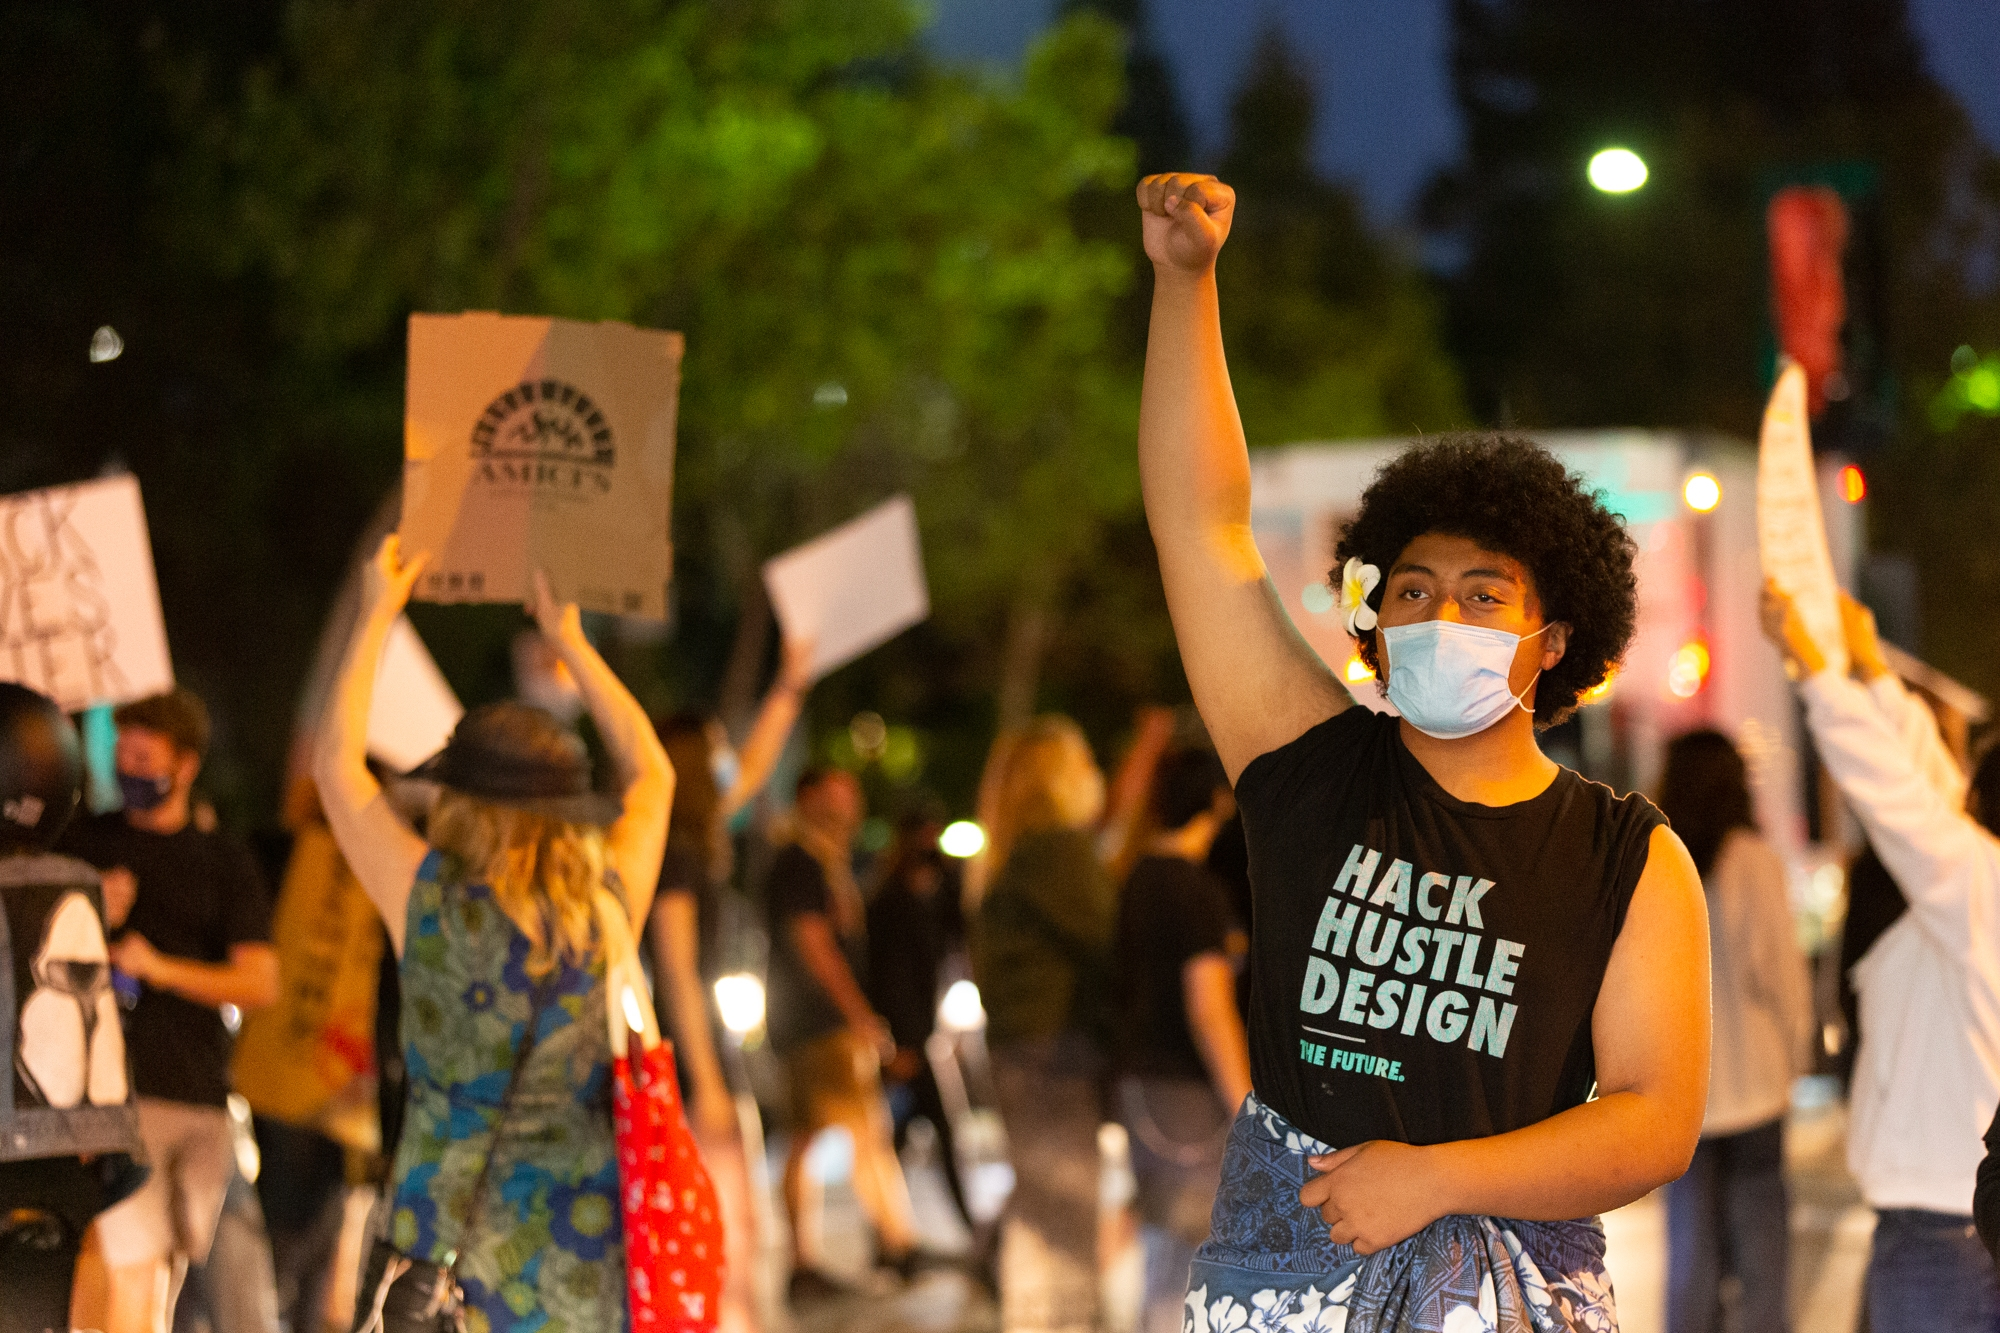 Protester demanding justice for Breonna Taylor stop traffic in Menlo Park